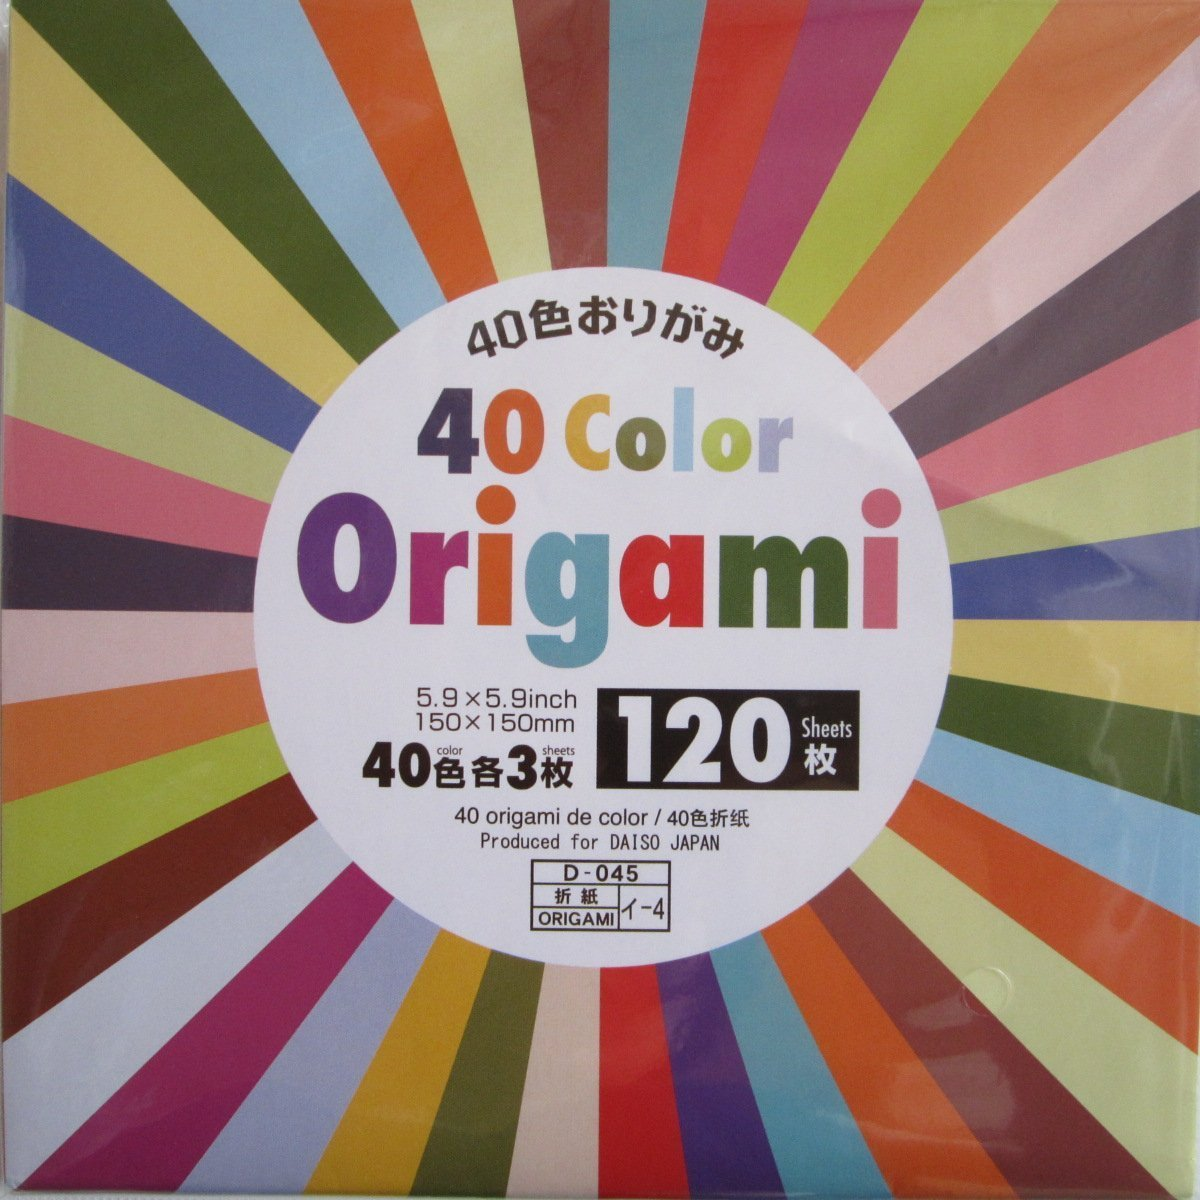 40 Color Origami - 120 Sheets